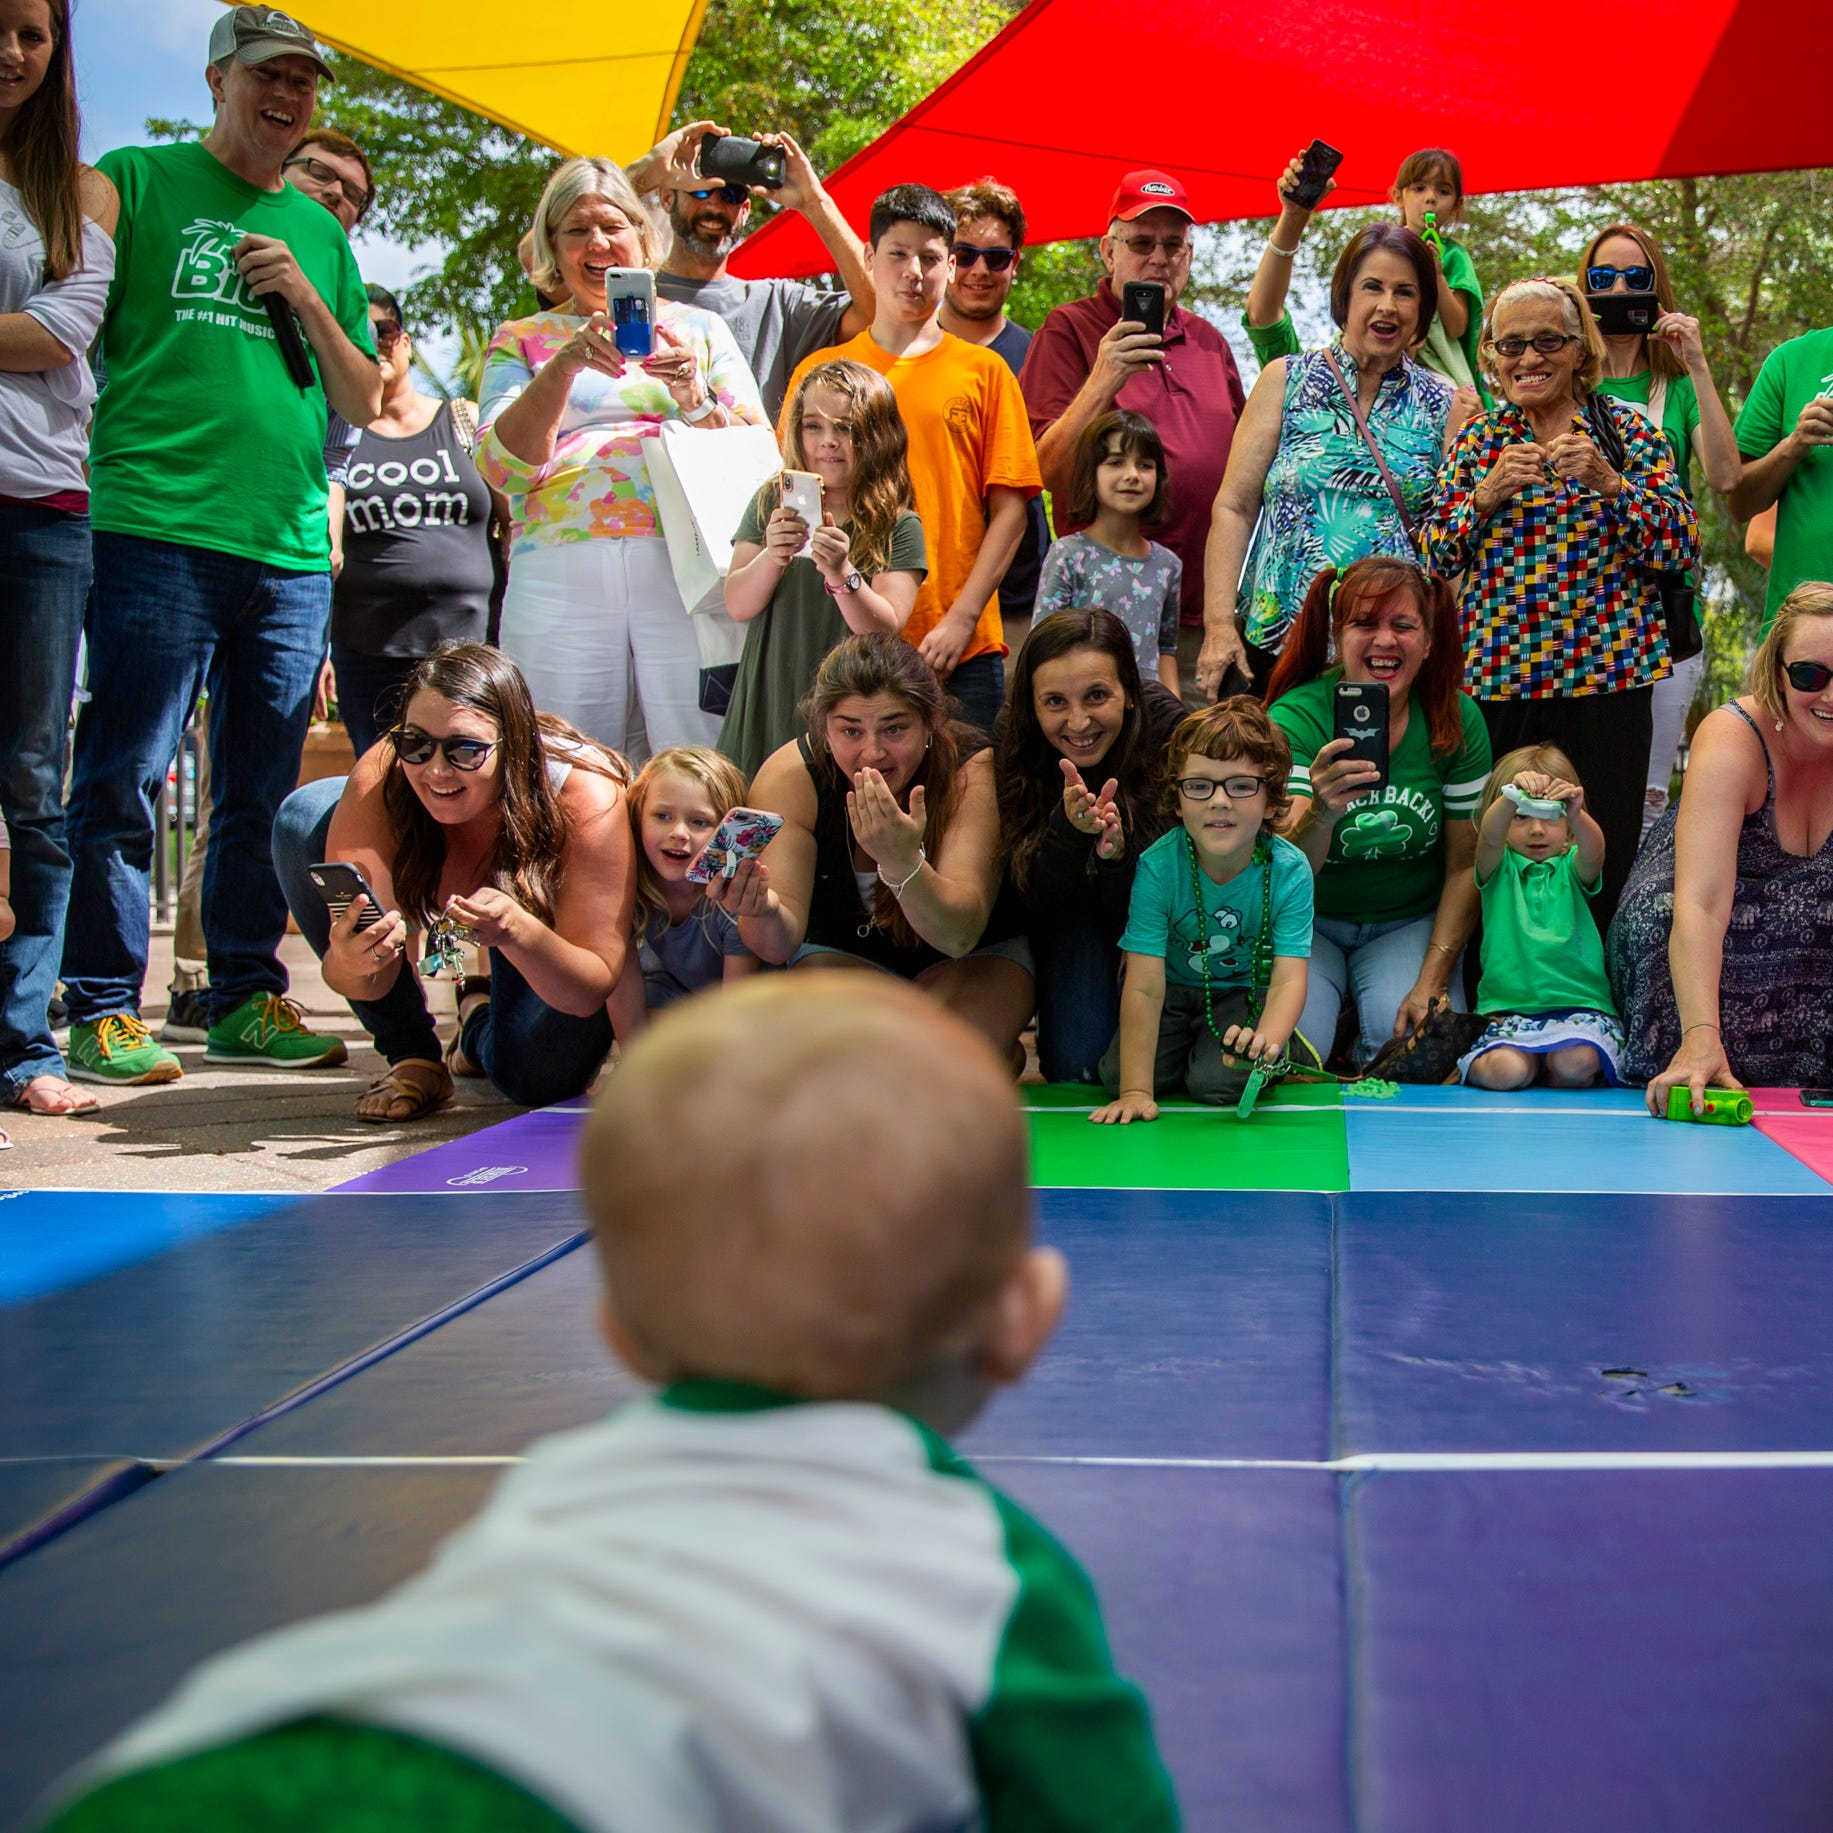 Baby Leprechauns compete in a kooky St. Patrick's Day race